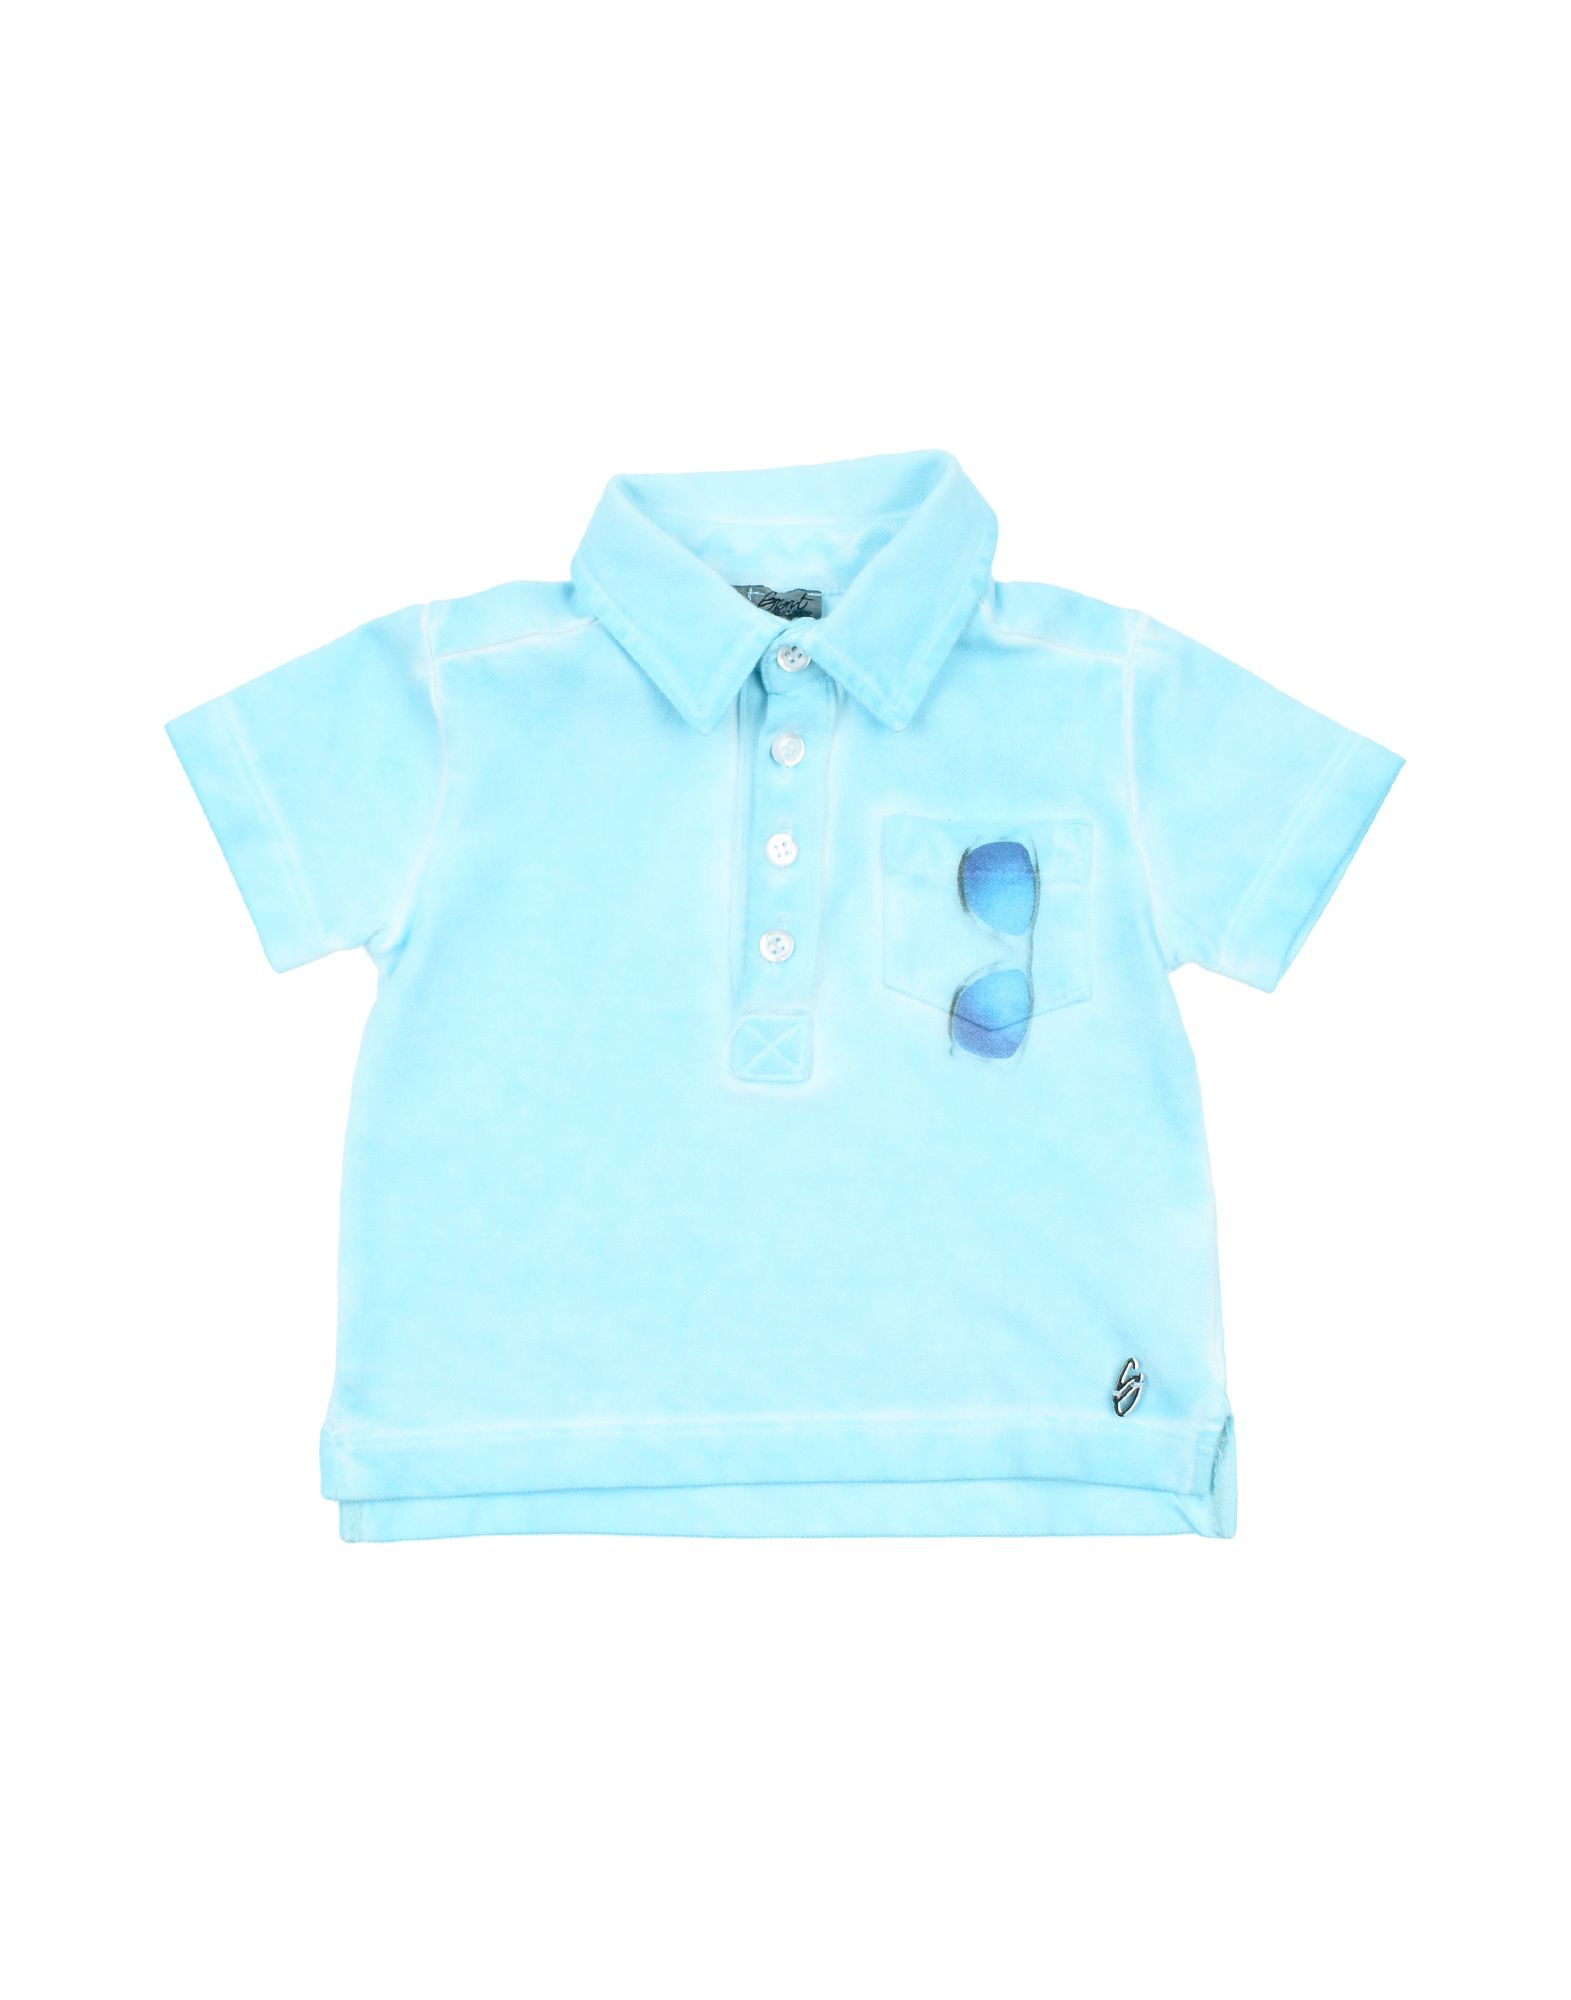 Grant Garçon Baby Kids' Polo Shirts In Green